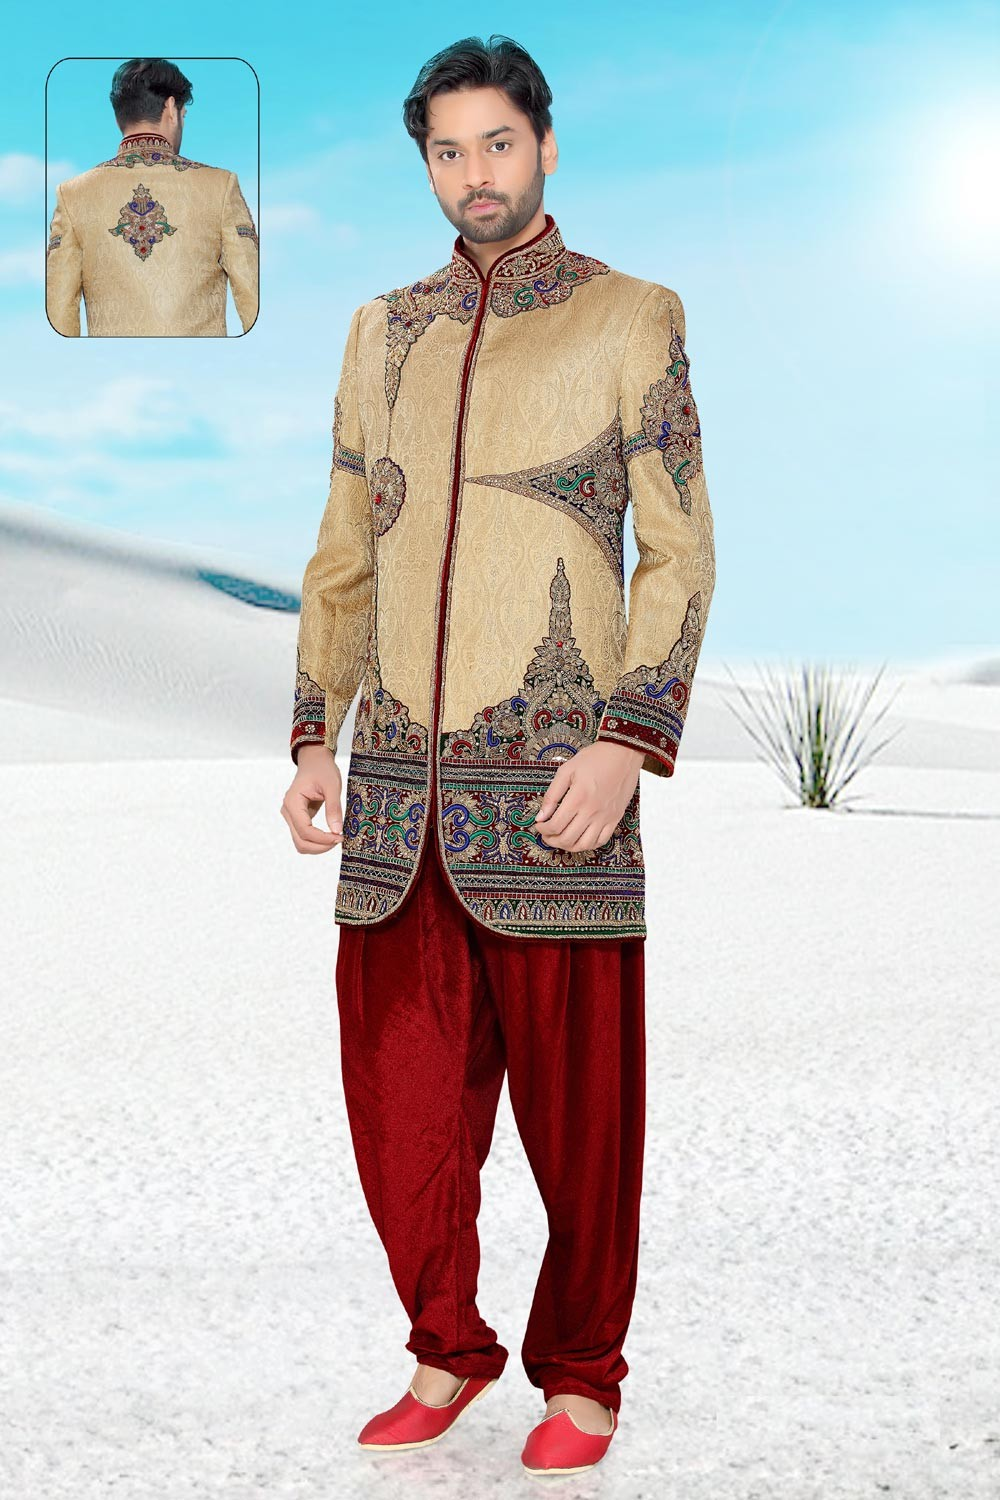 Men's Appealing Golden Brocade Men's Indo Western